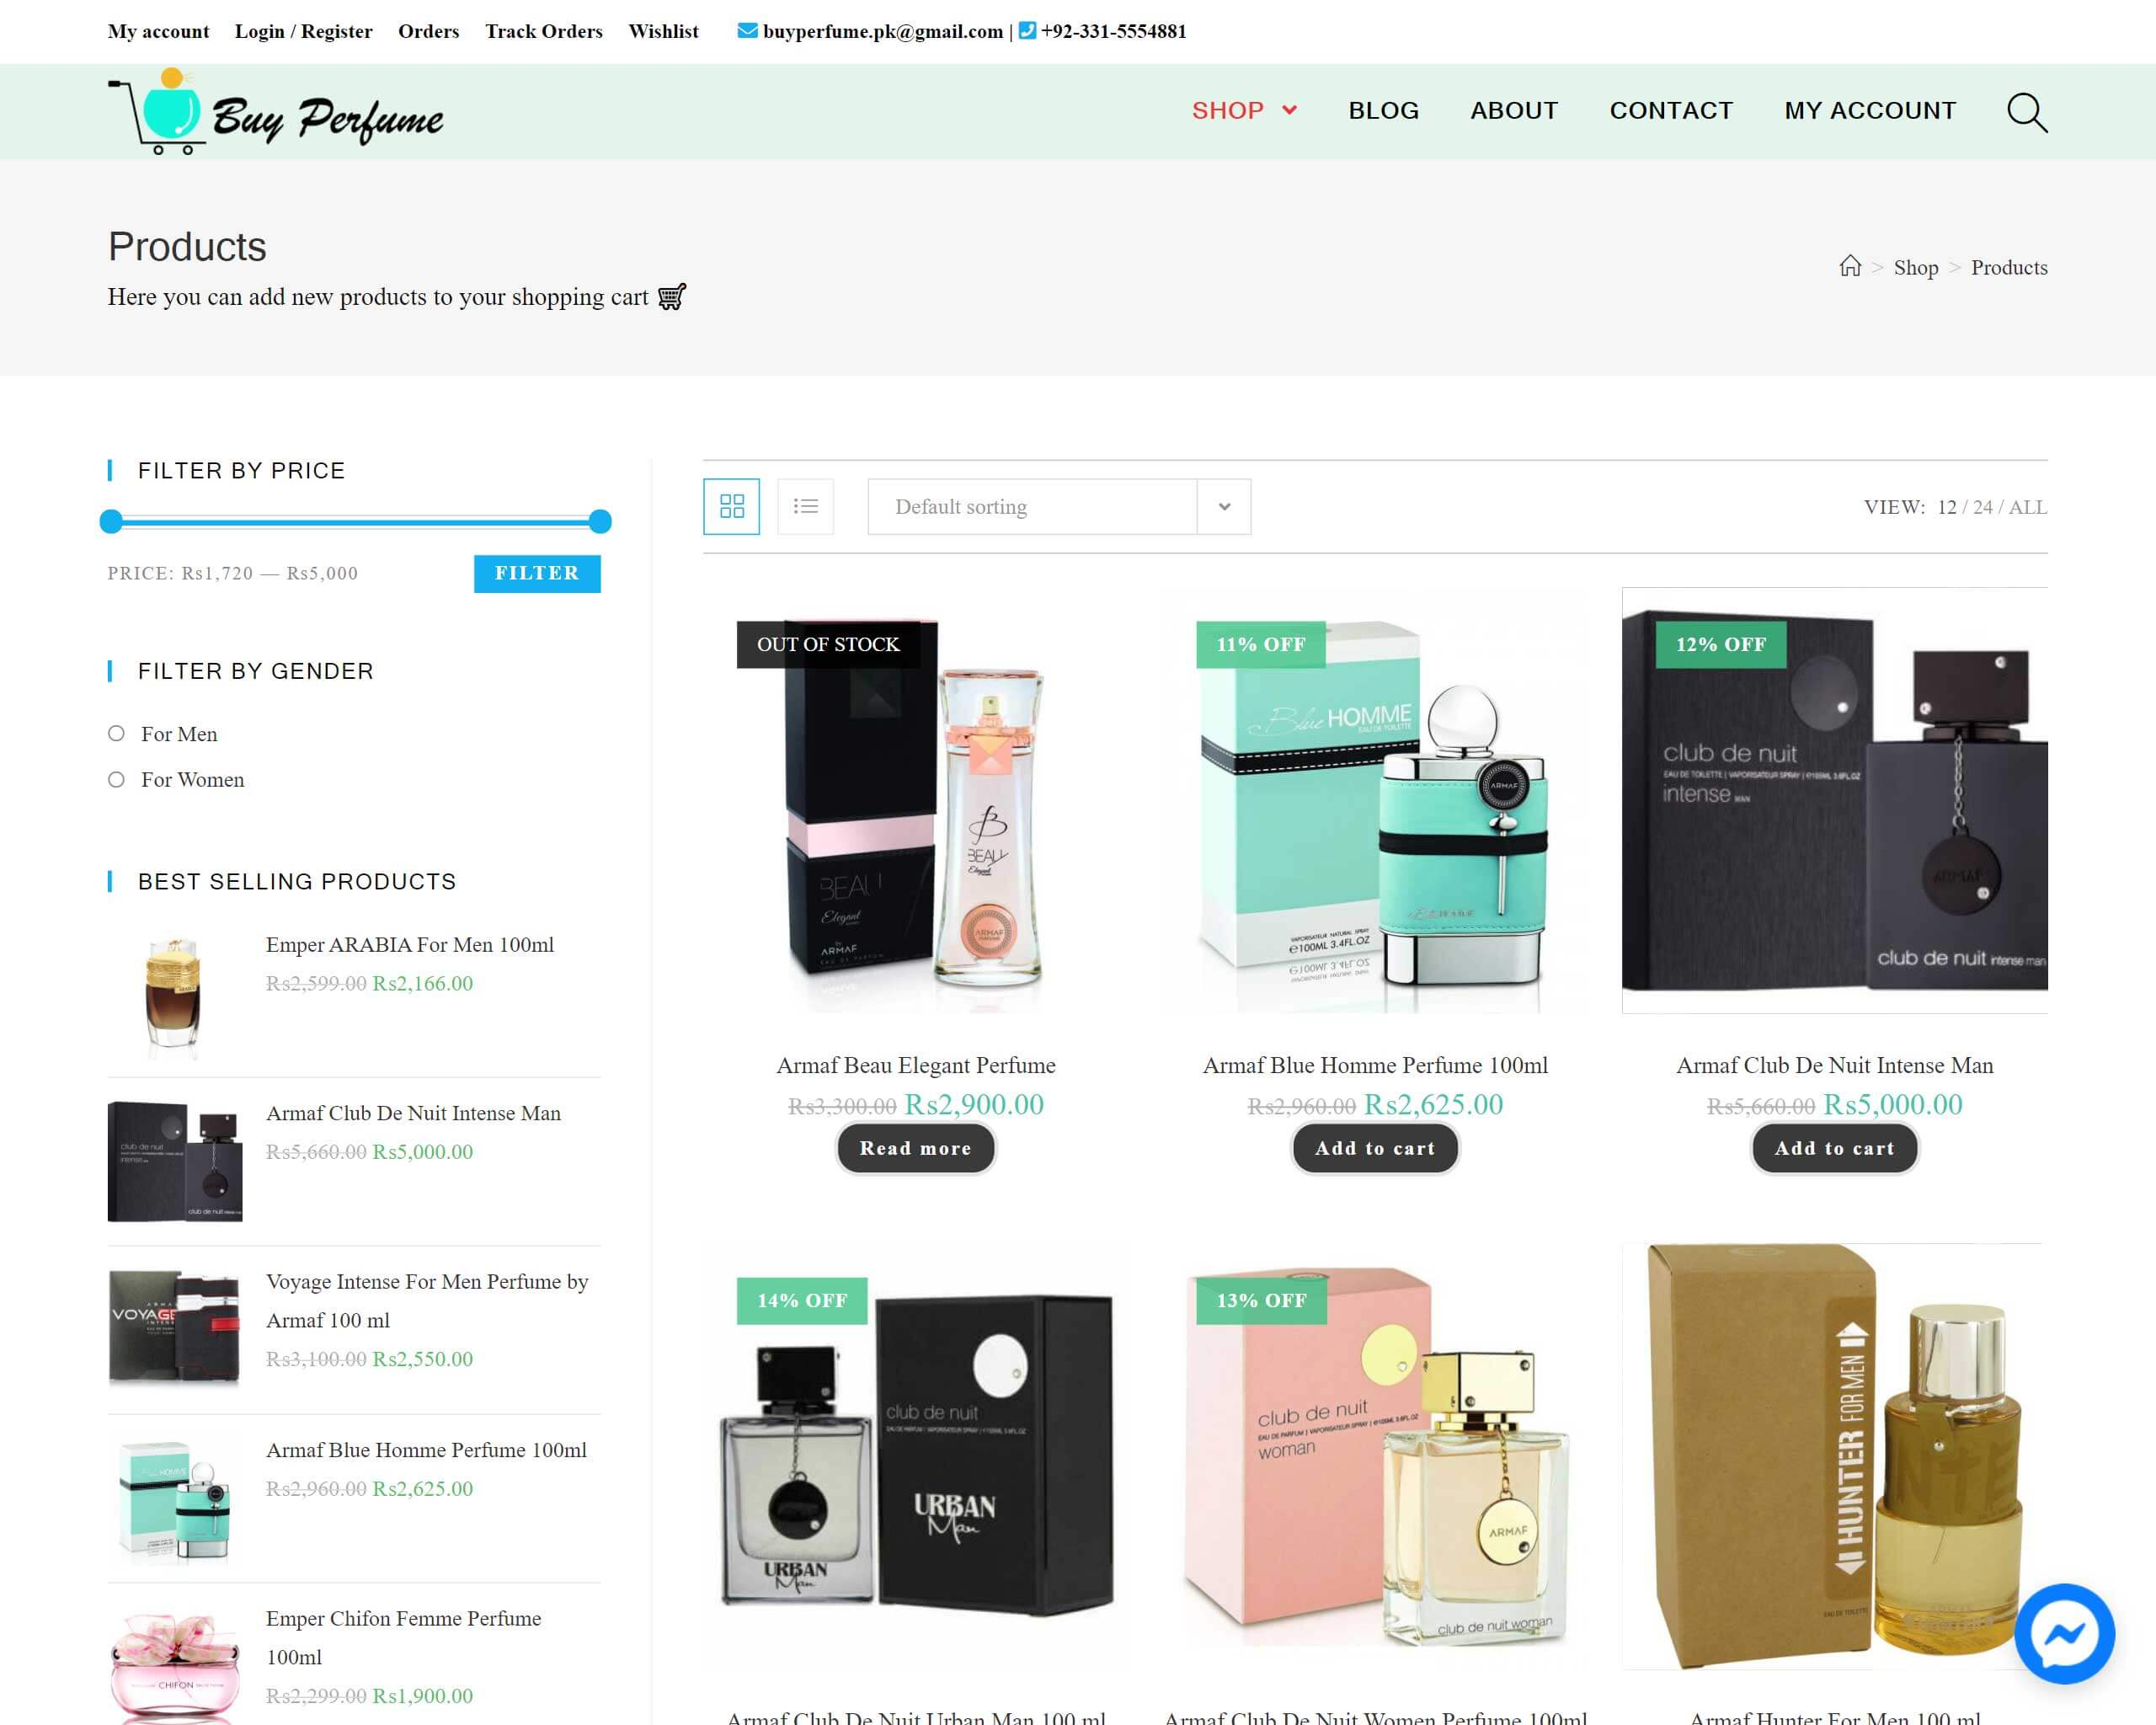 Buy Prfume Project made by WebPlover